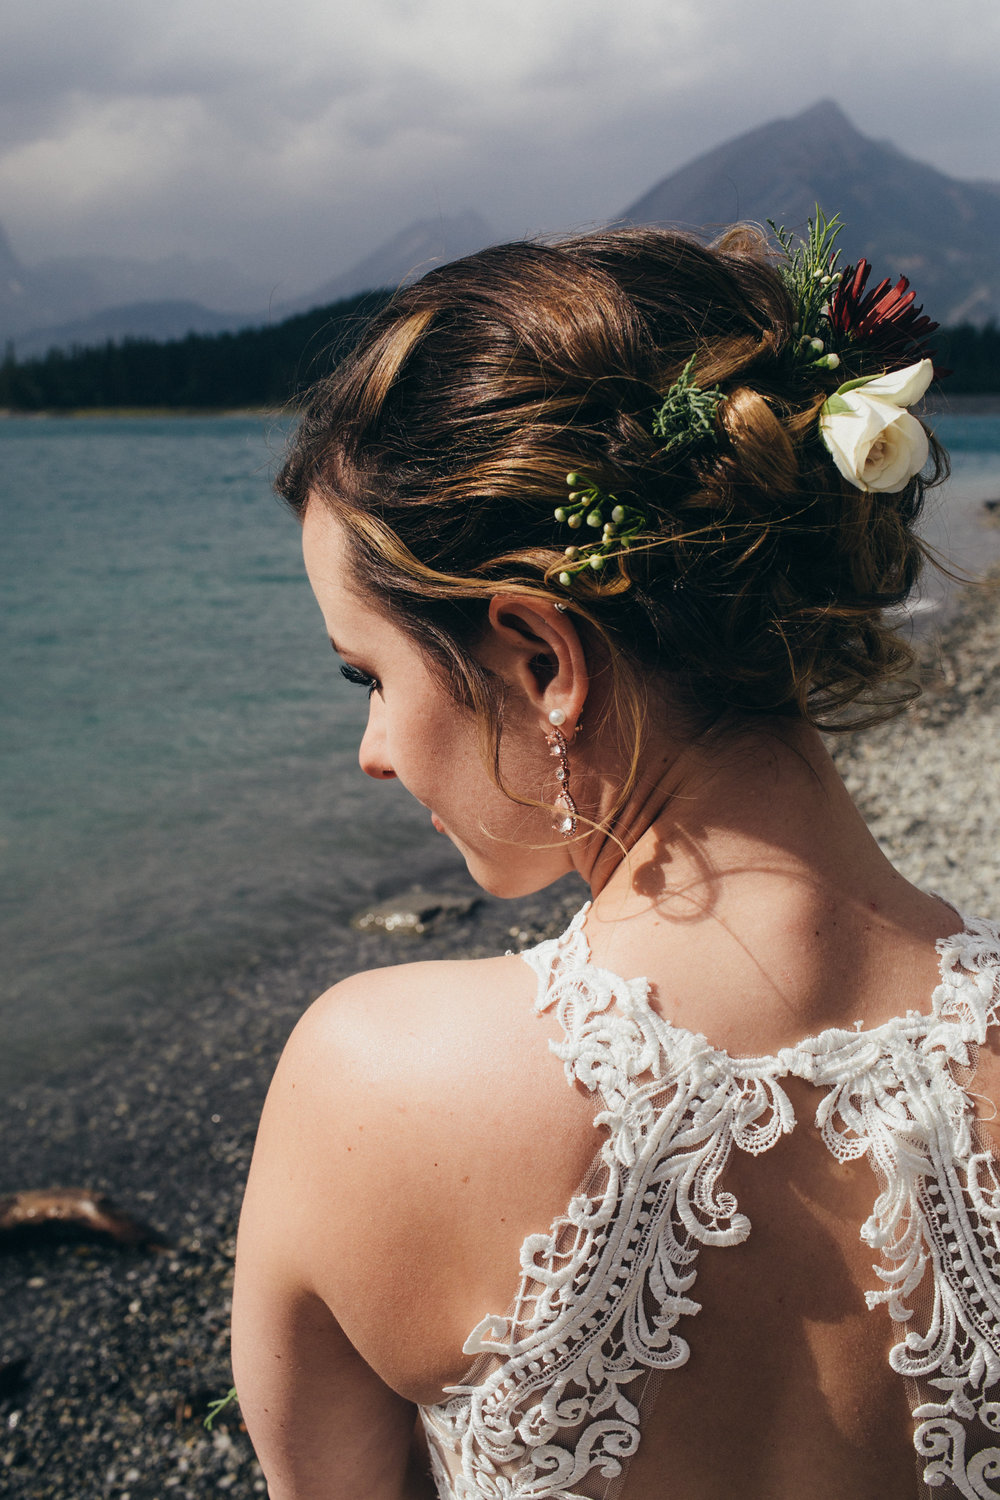 hair flowers for bride from wedding florist based in calgary cochrane airdrie banff